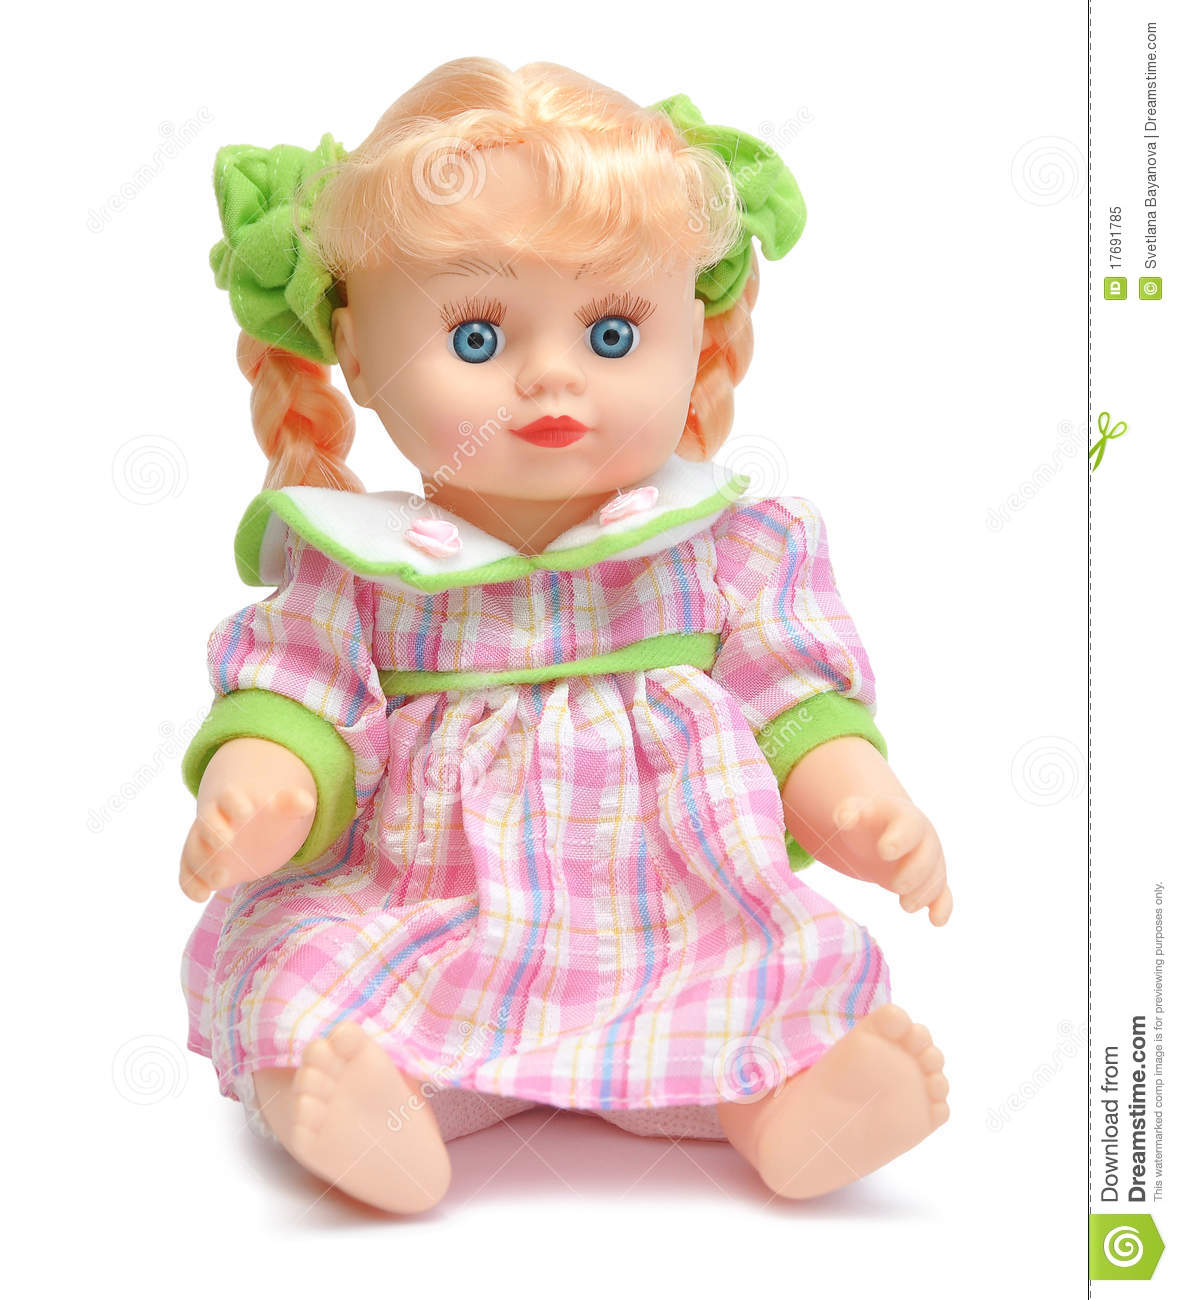 Images of Doll | 1178x1300